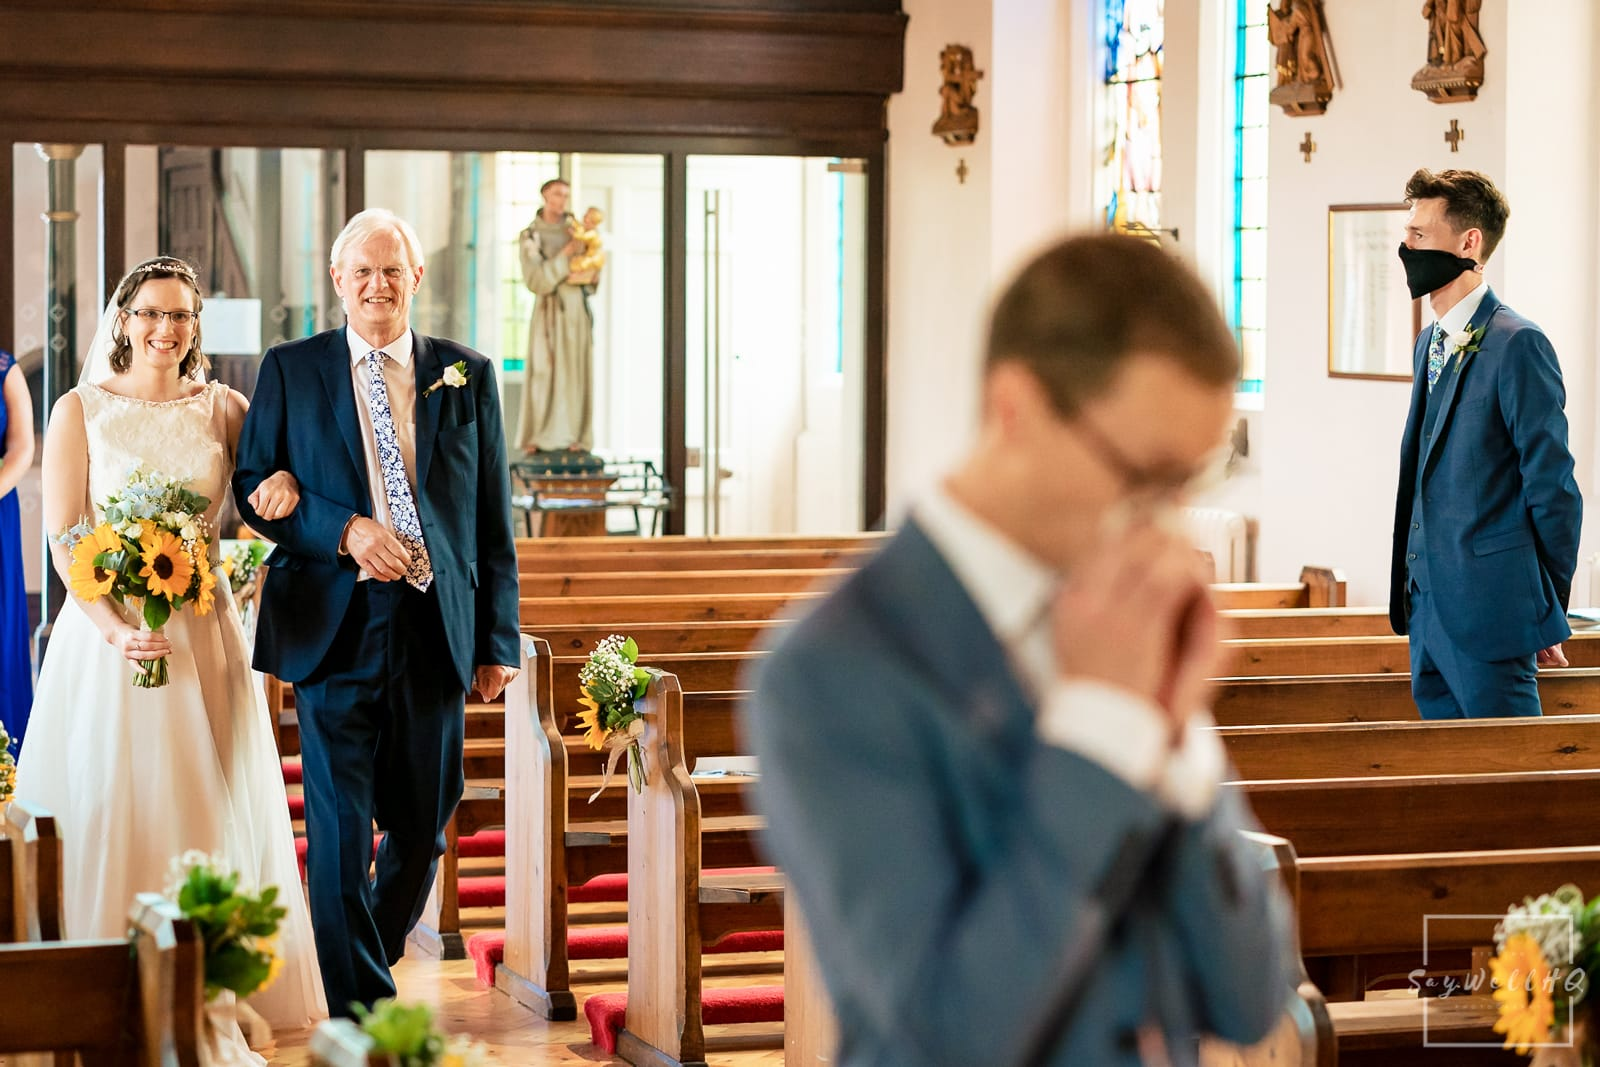 Bride and her Father walking down the aisle arm in arm